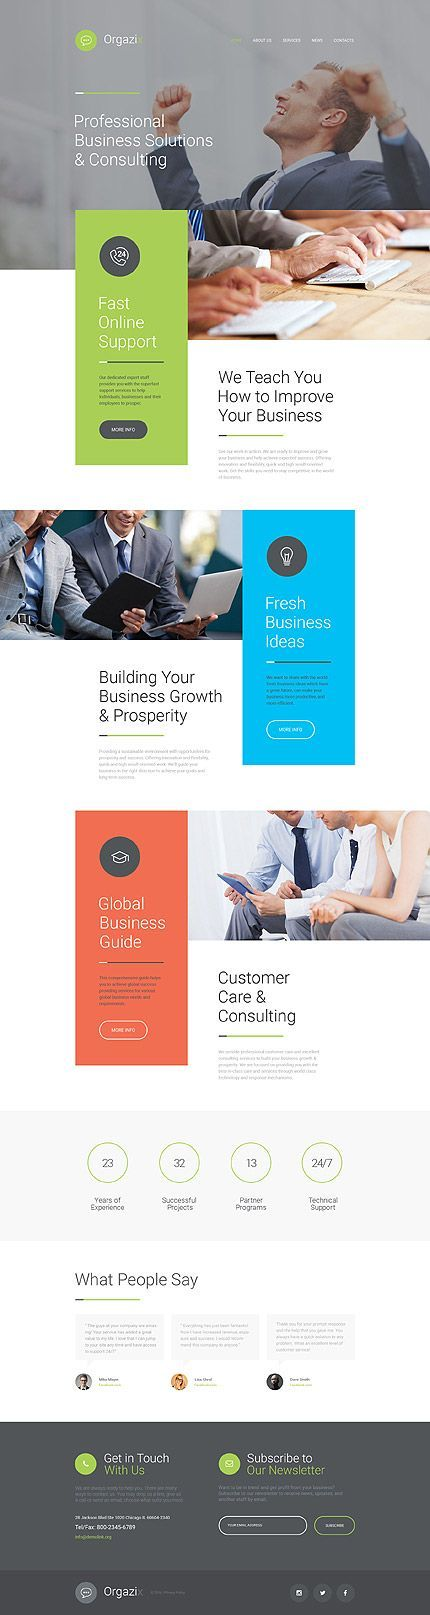 2391 best Web Design images on Pinterest Design web, Design - fresh building blueprint design software